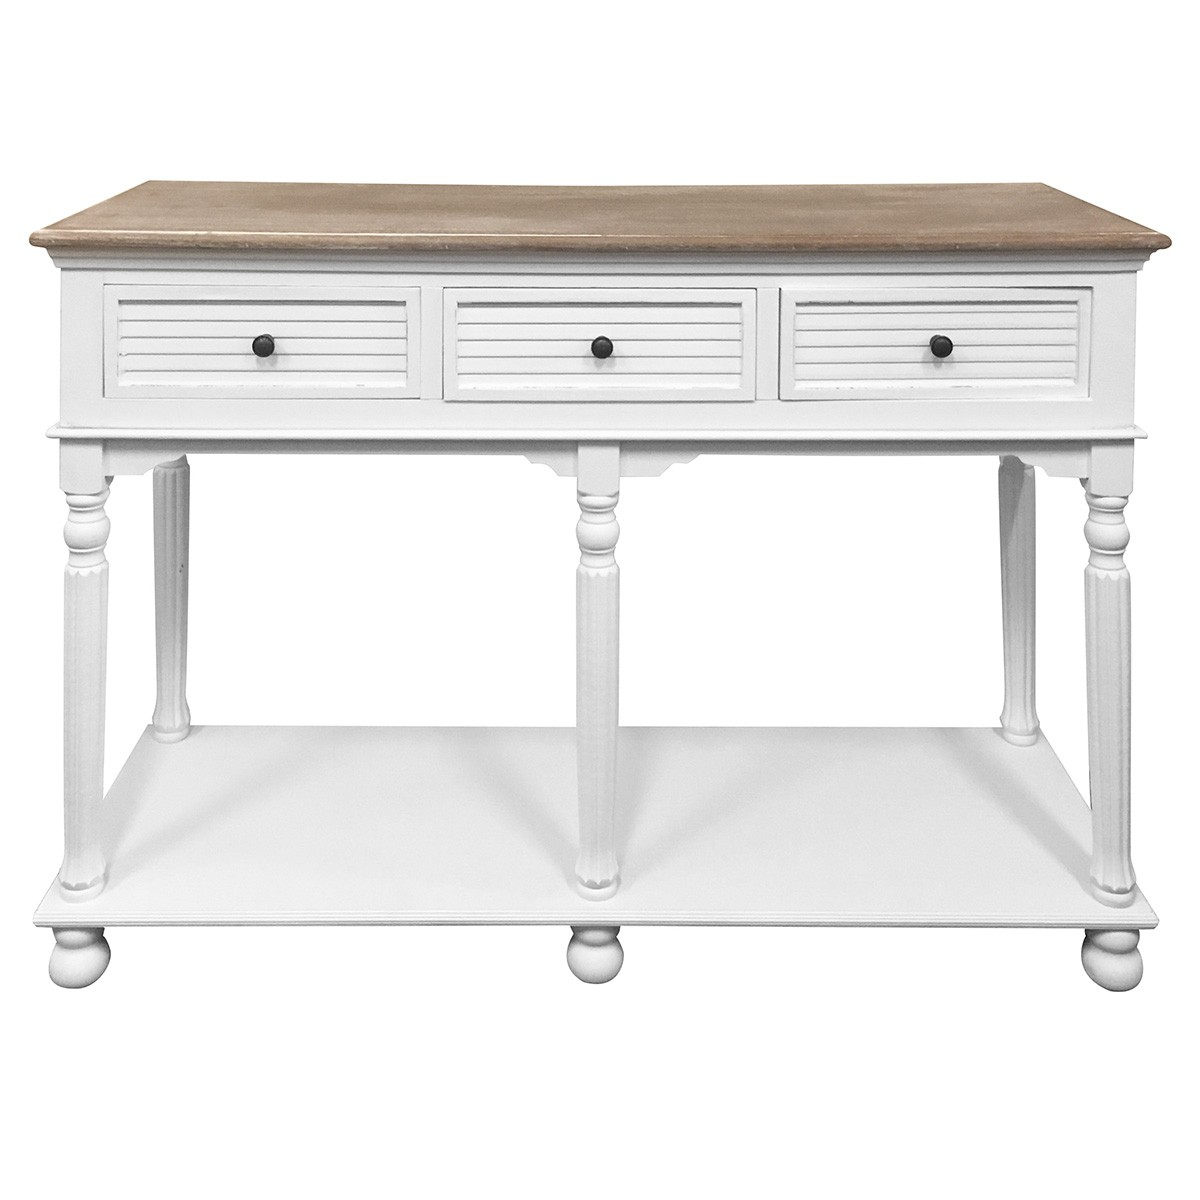 Bondy 2 Tone 3 Drawer Hall Table, 120cm